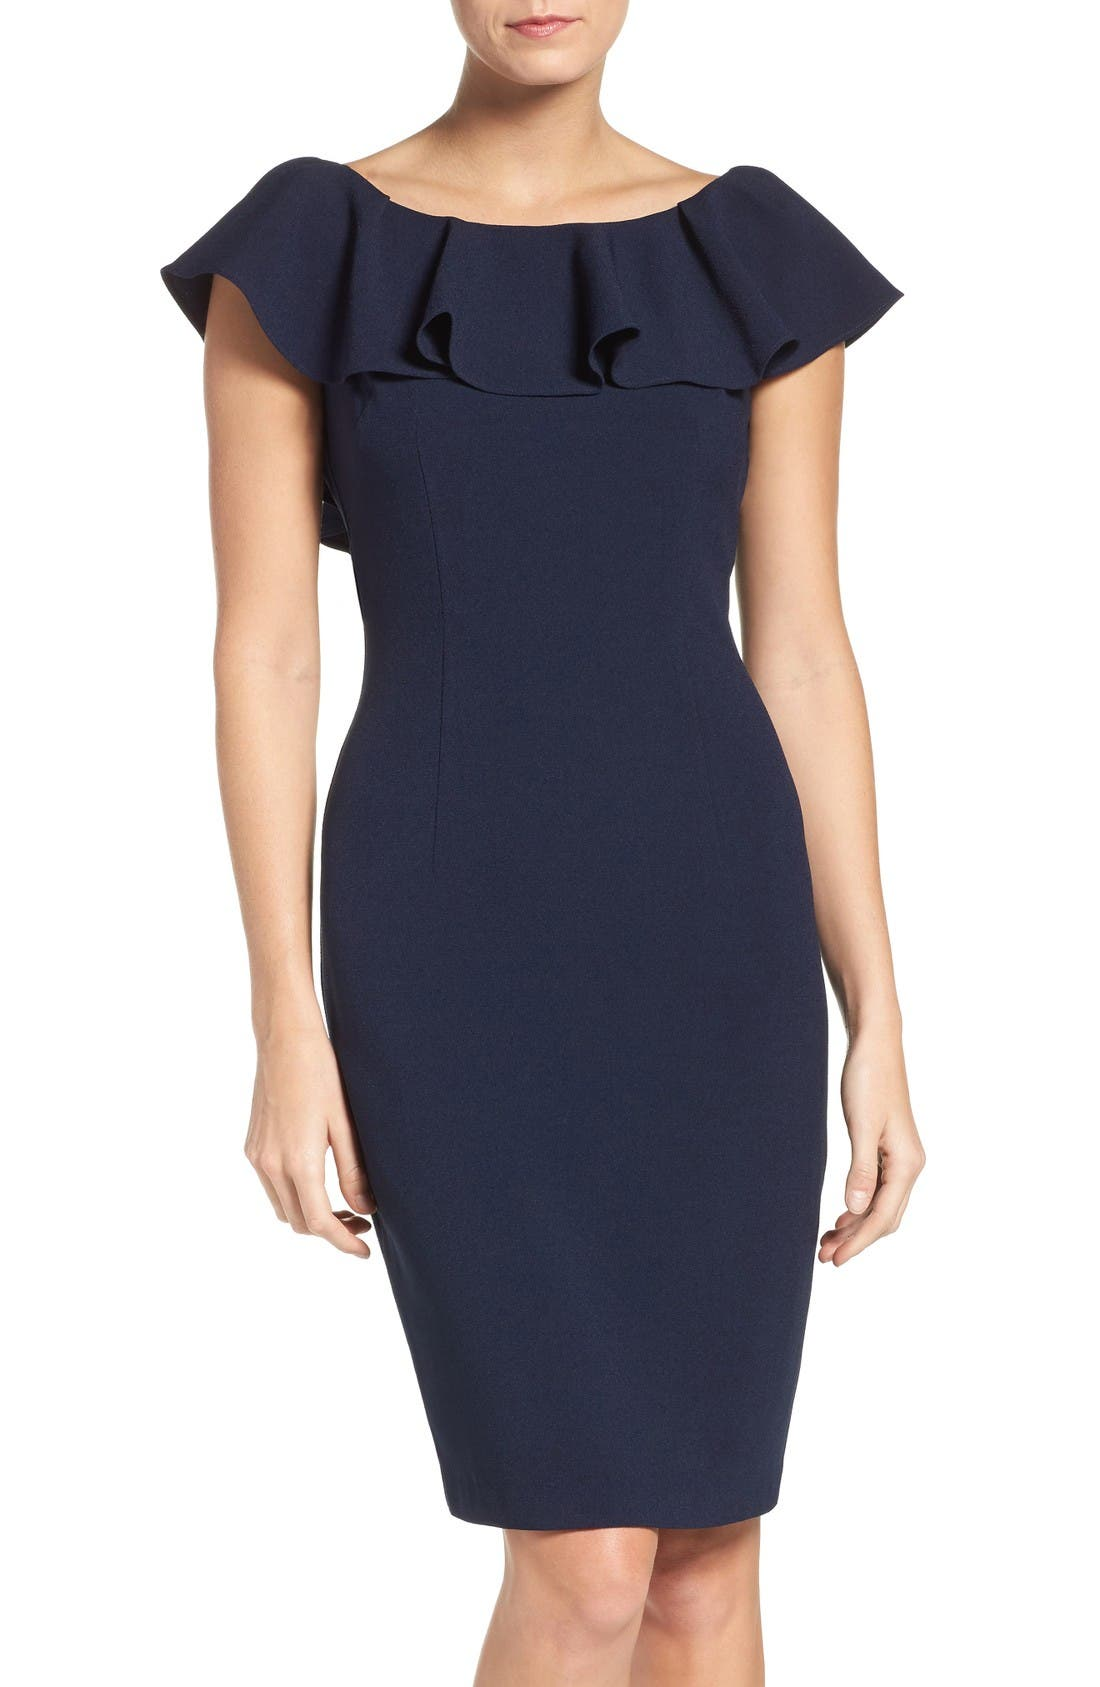 Eliza J Ruffle Sheath Dress (Regular & Petite)